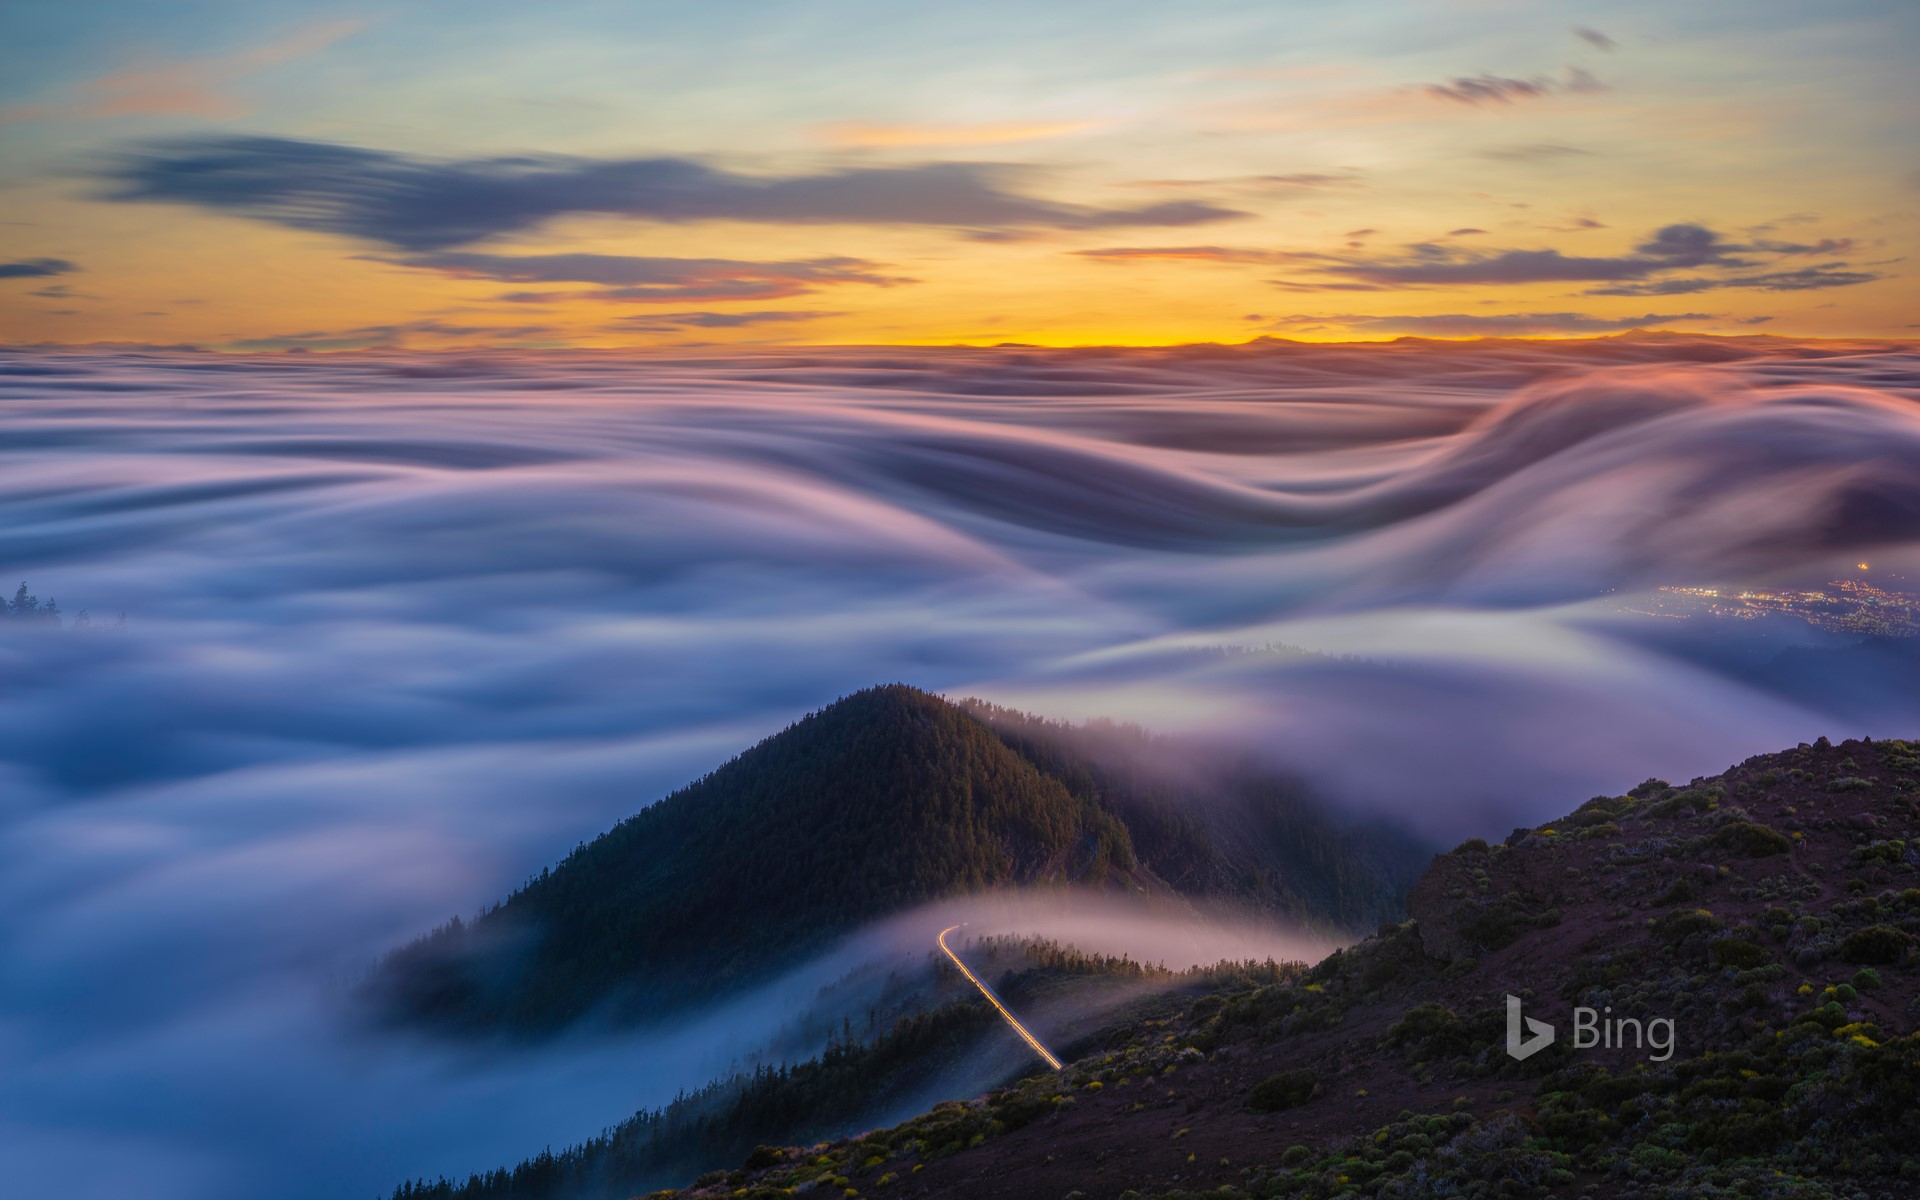 Clouds flowing over the mountains of Tenerife Canary Islands 1920x1200